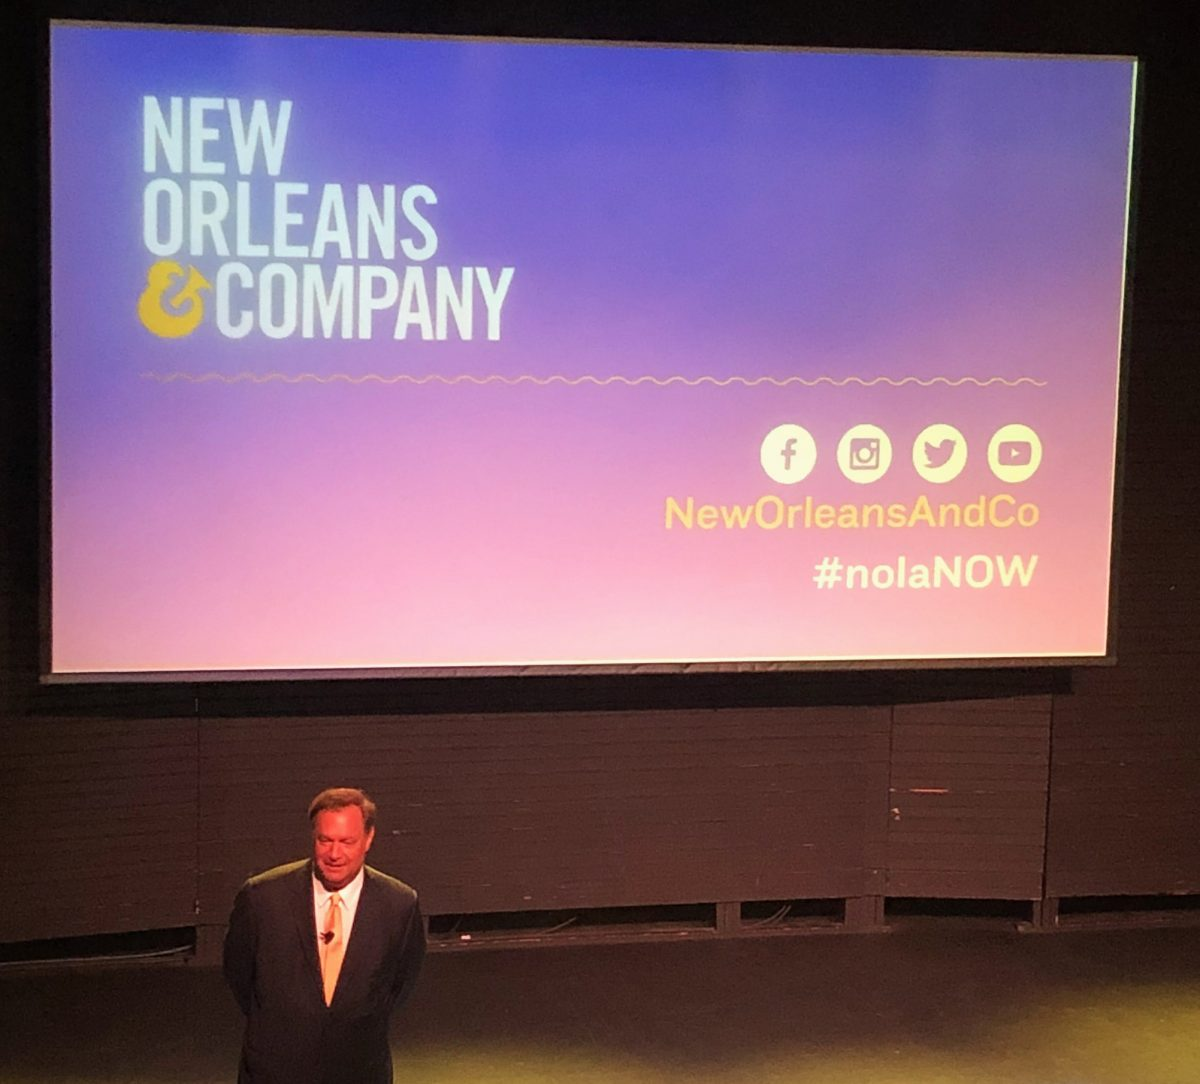 New Orleans & Company brand launch event